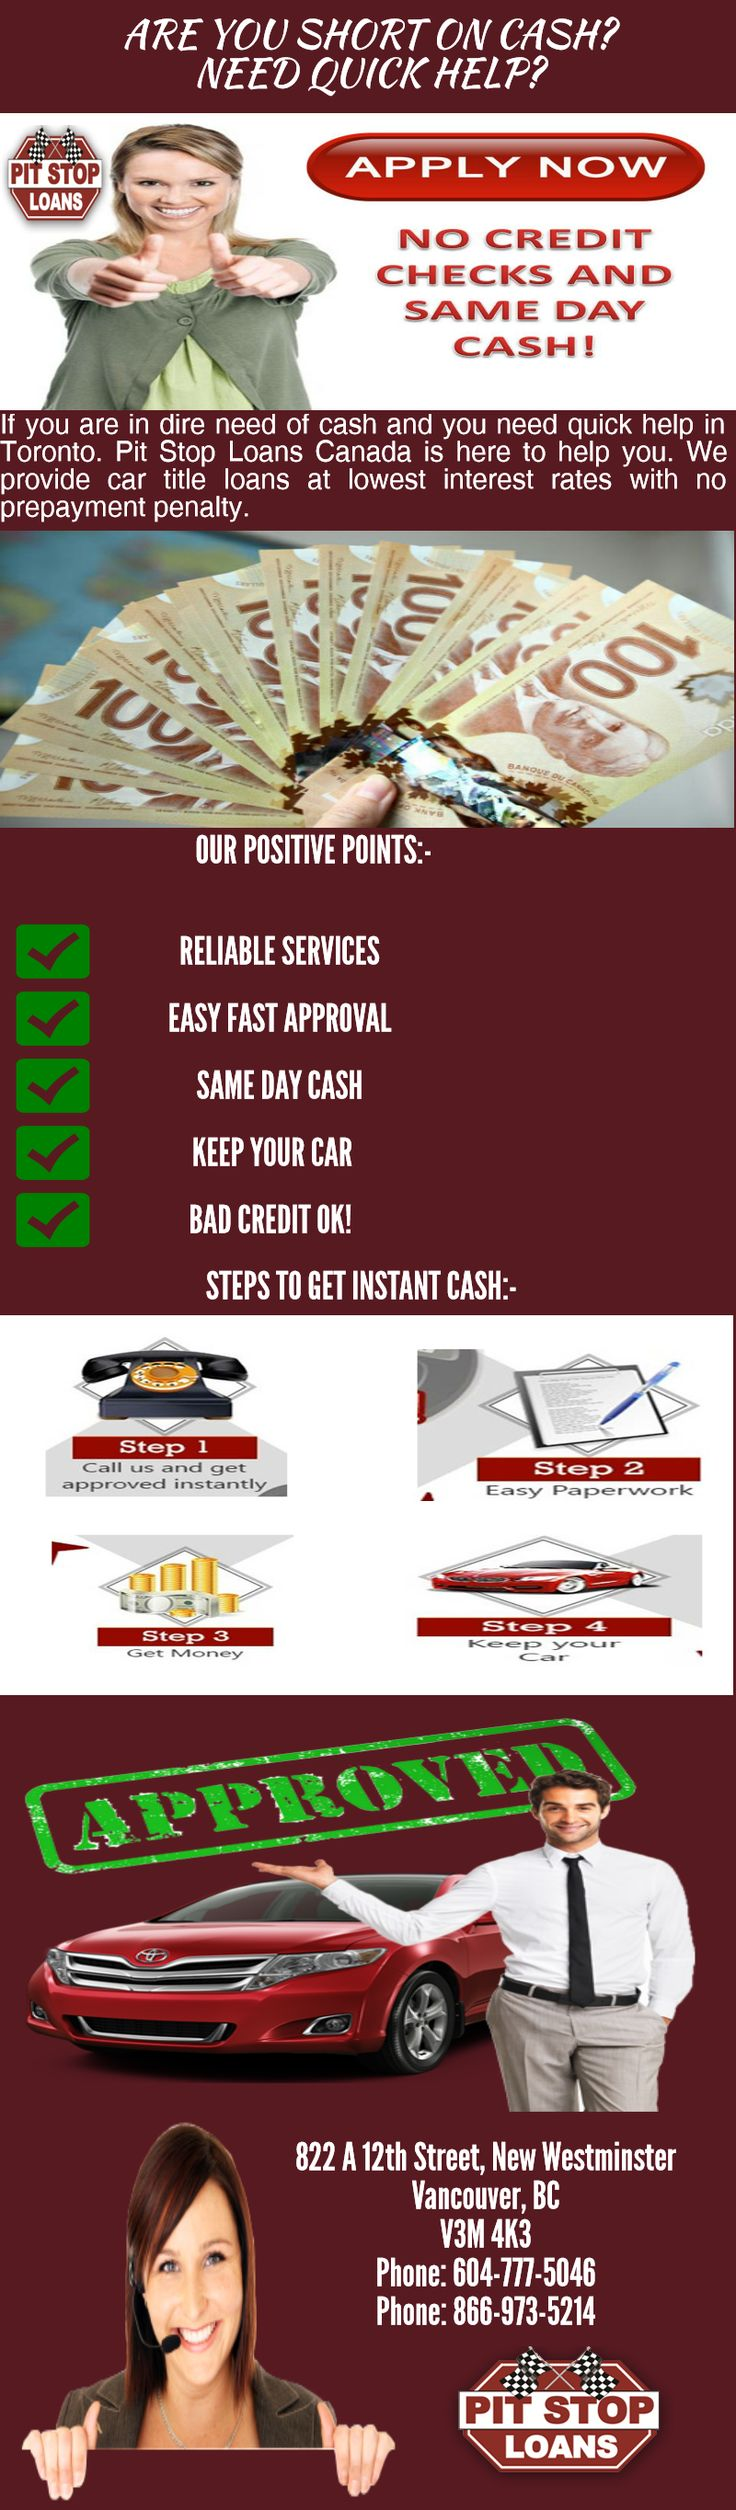 Get quick and instant approval on your car title loans in toronto with pit stop loans